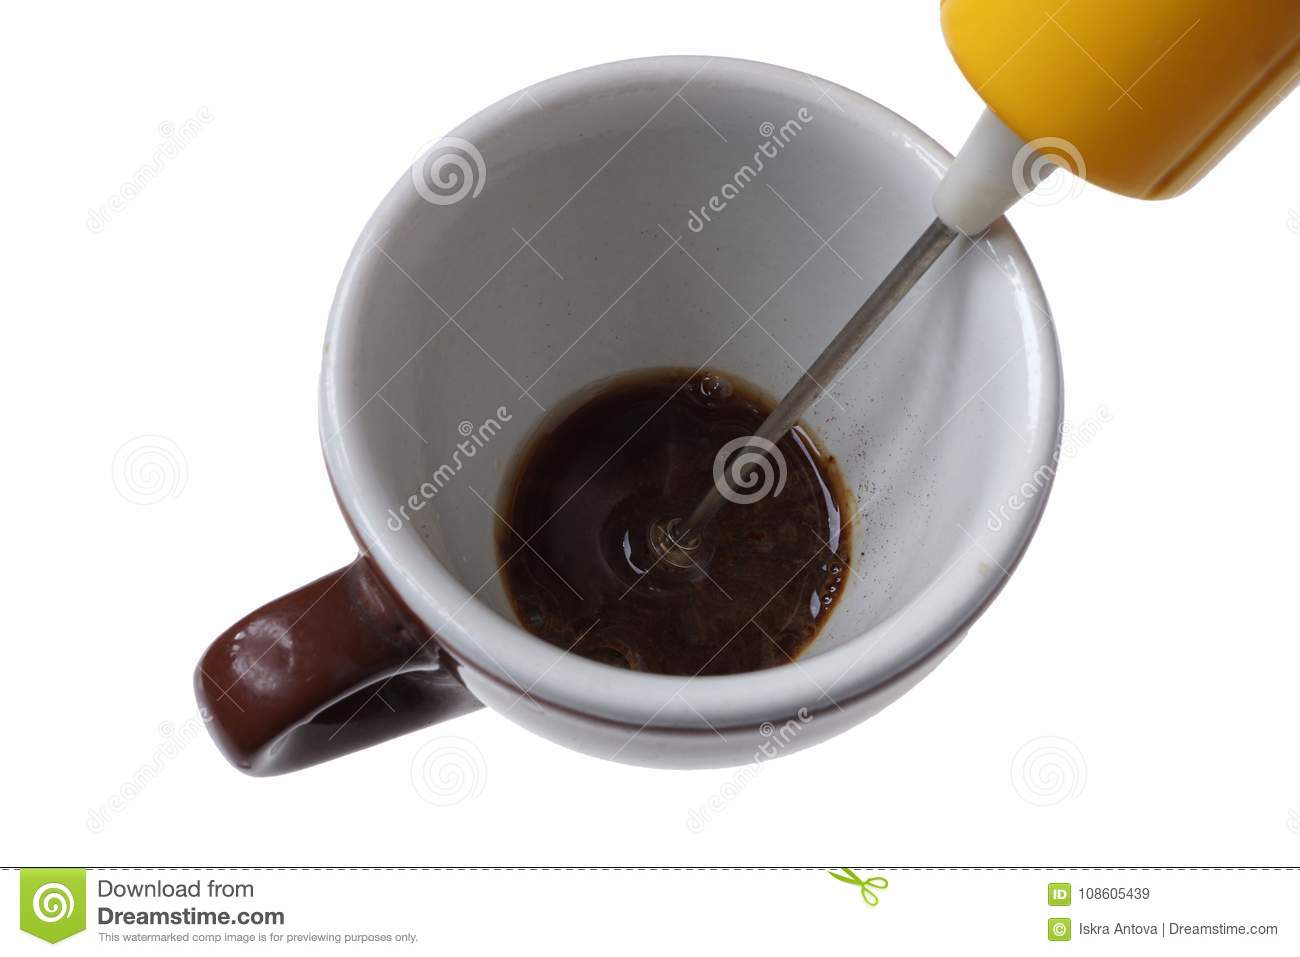 Electric beater for instant coffee and cup isolated on white